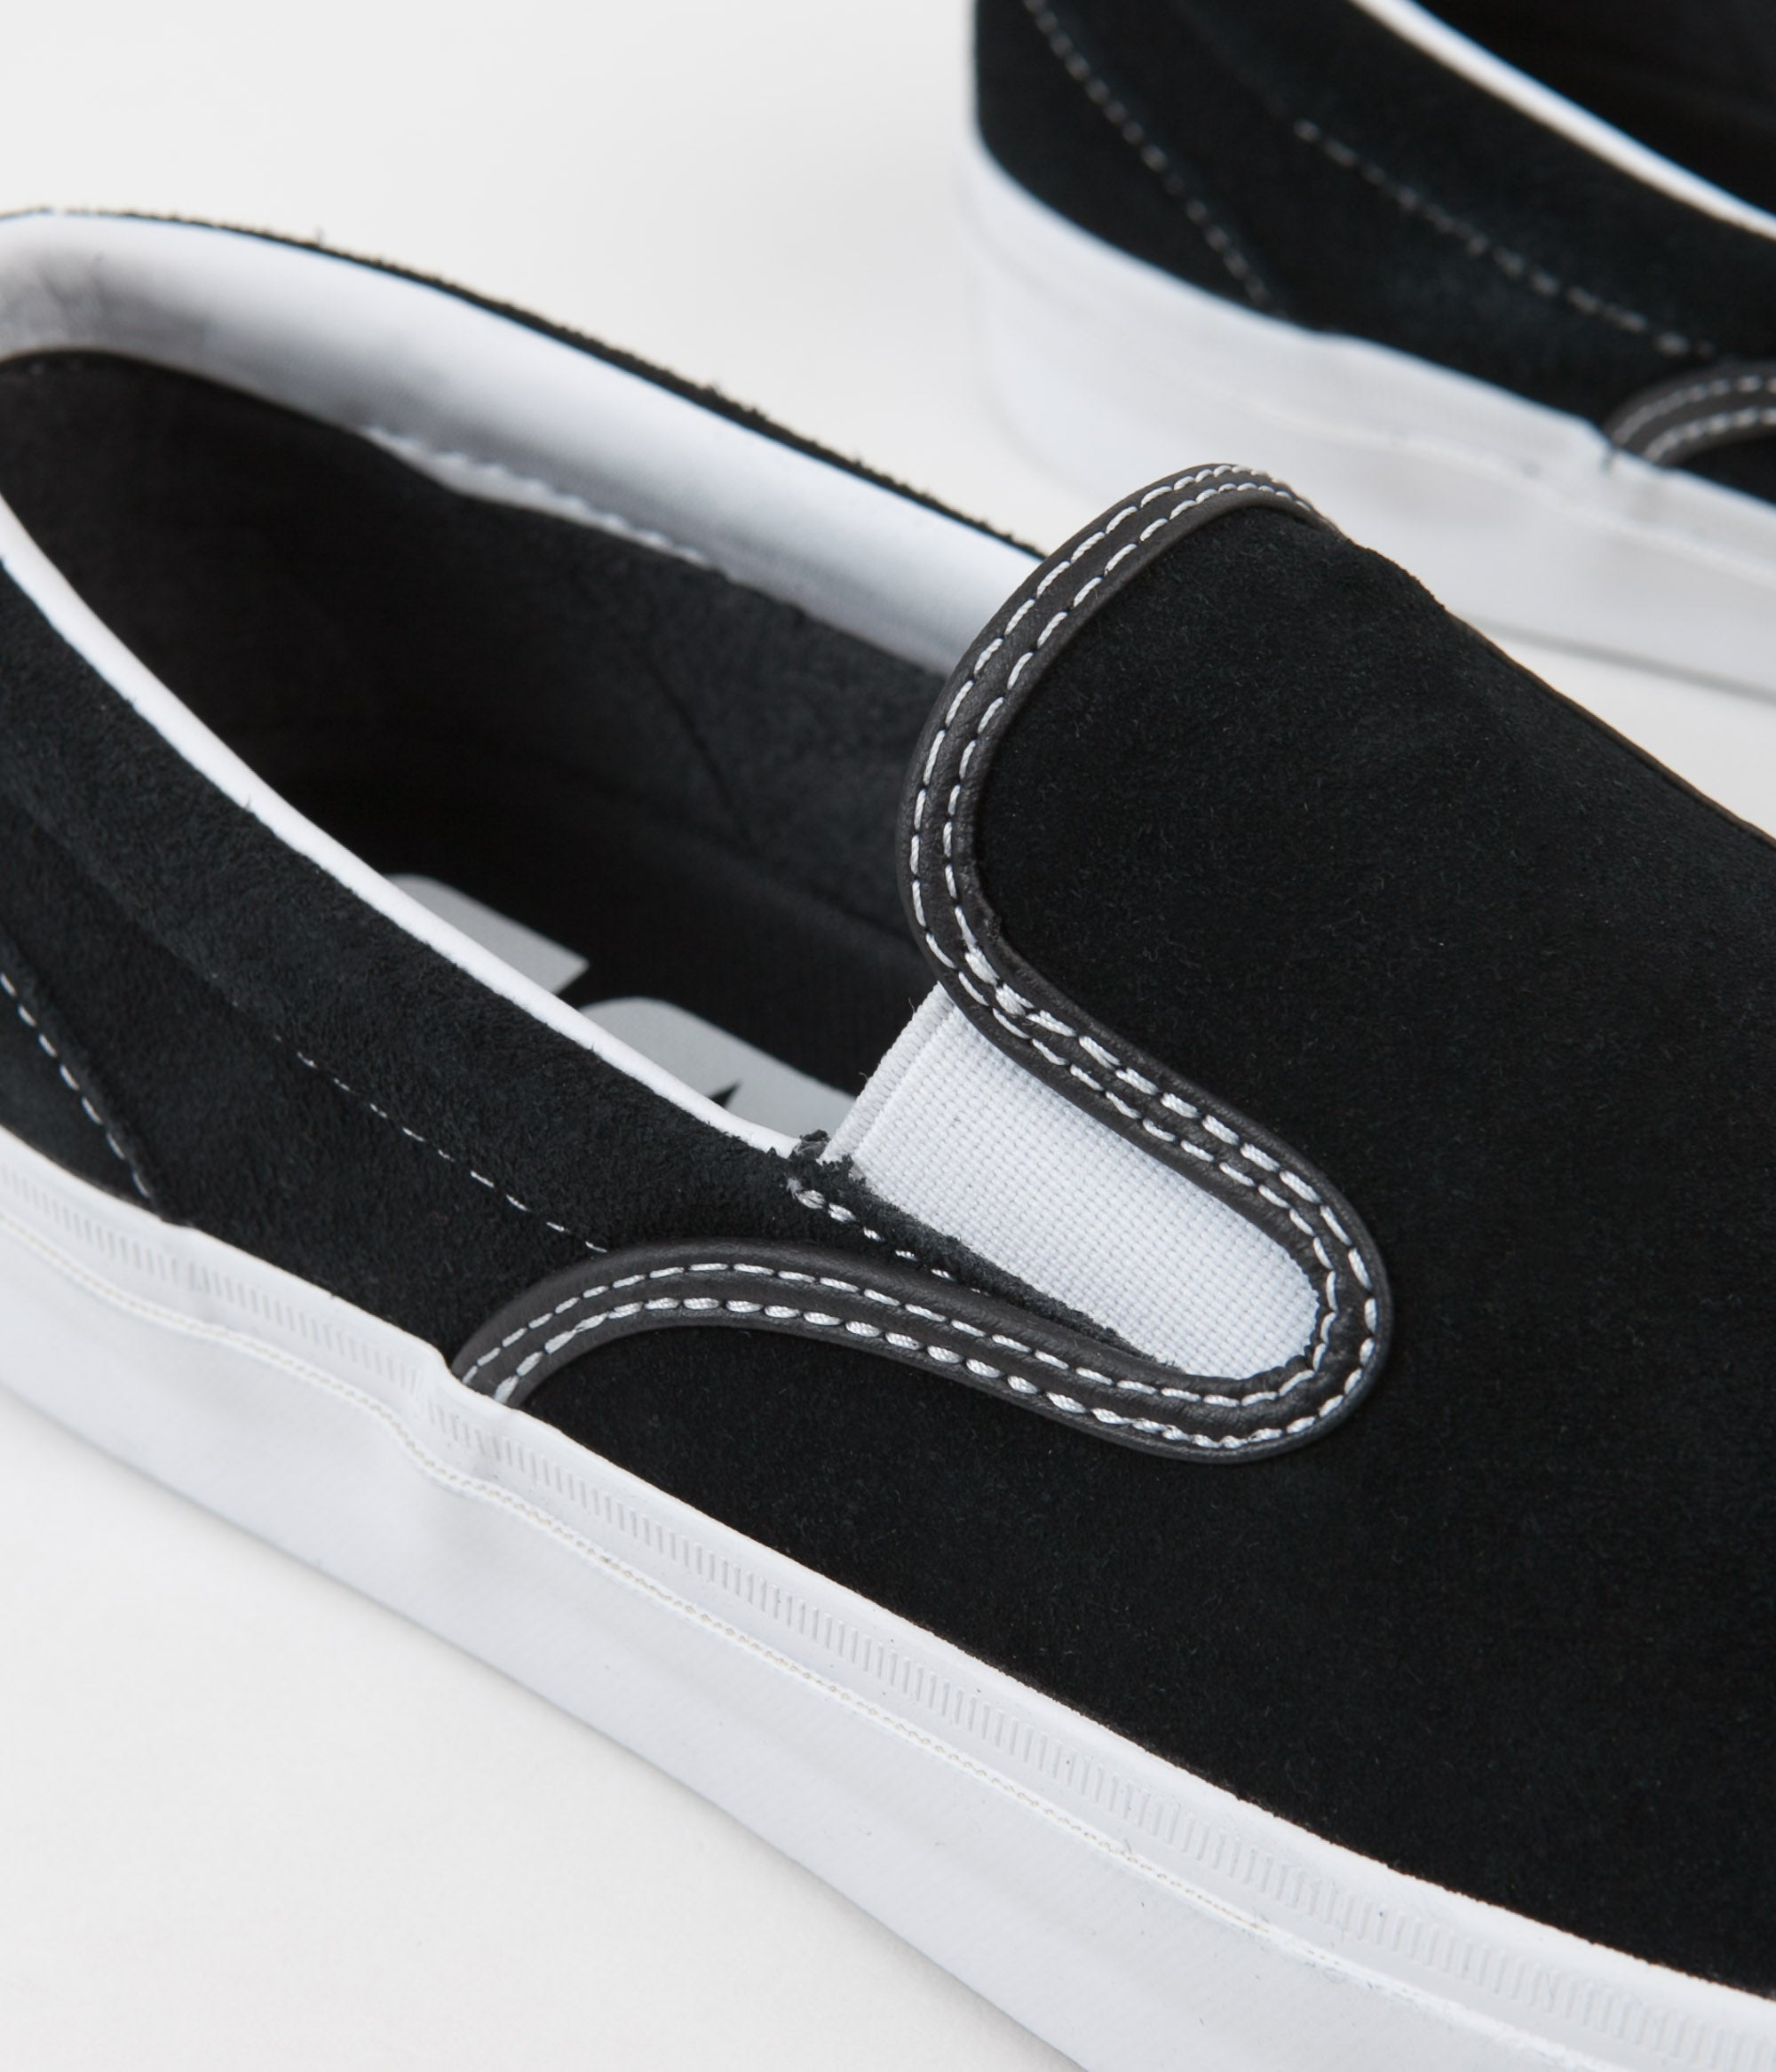 Converse One Star CC Slip On Shoes - Black / White / White